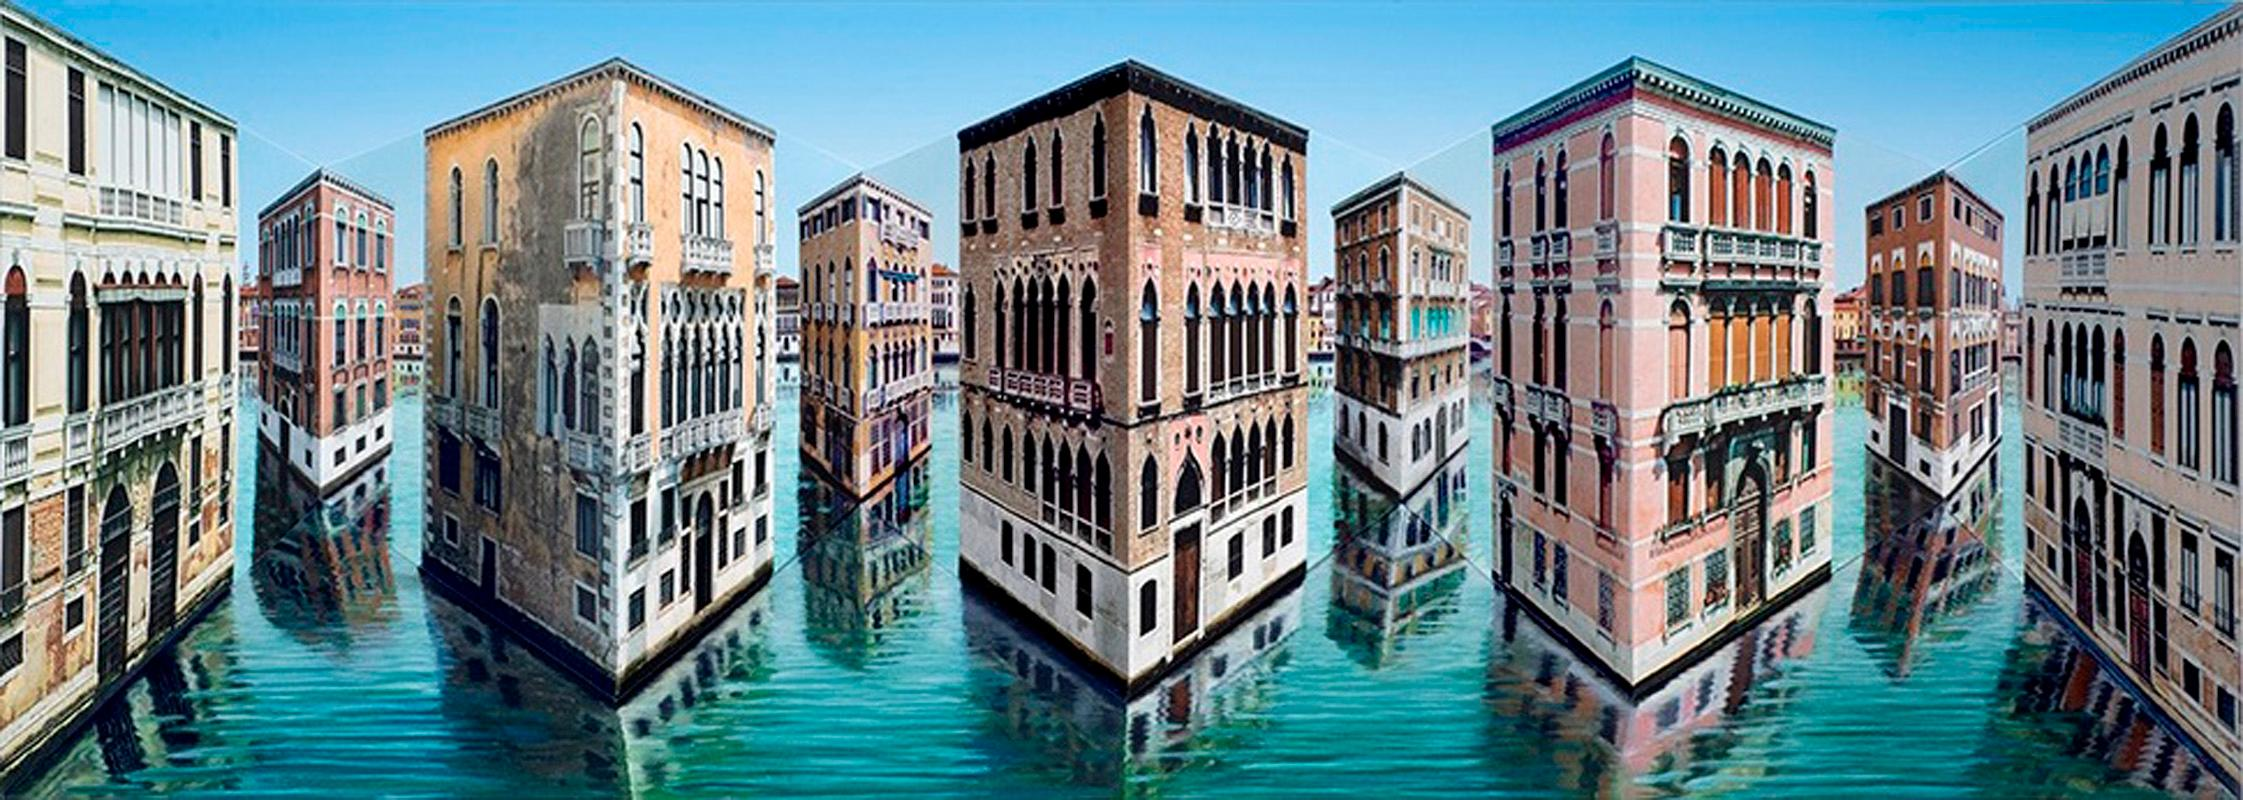 Patrick Hughes - In and out, Venice, landscape, italy, op art, reverspective